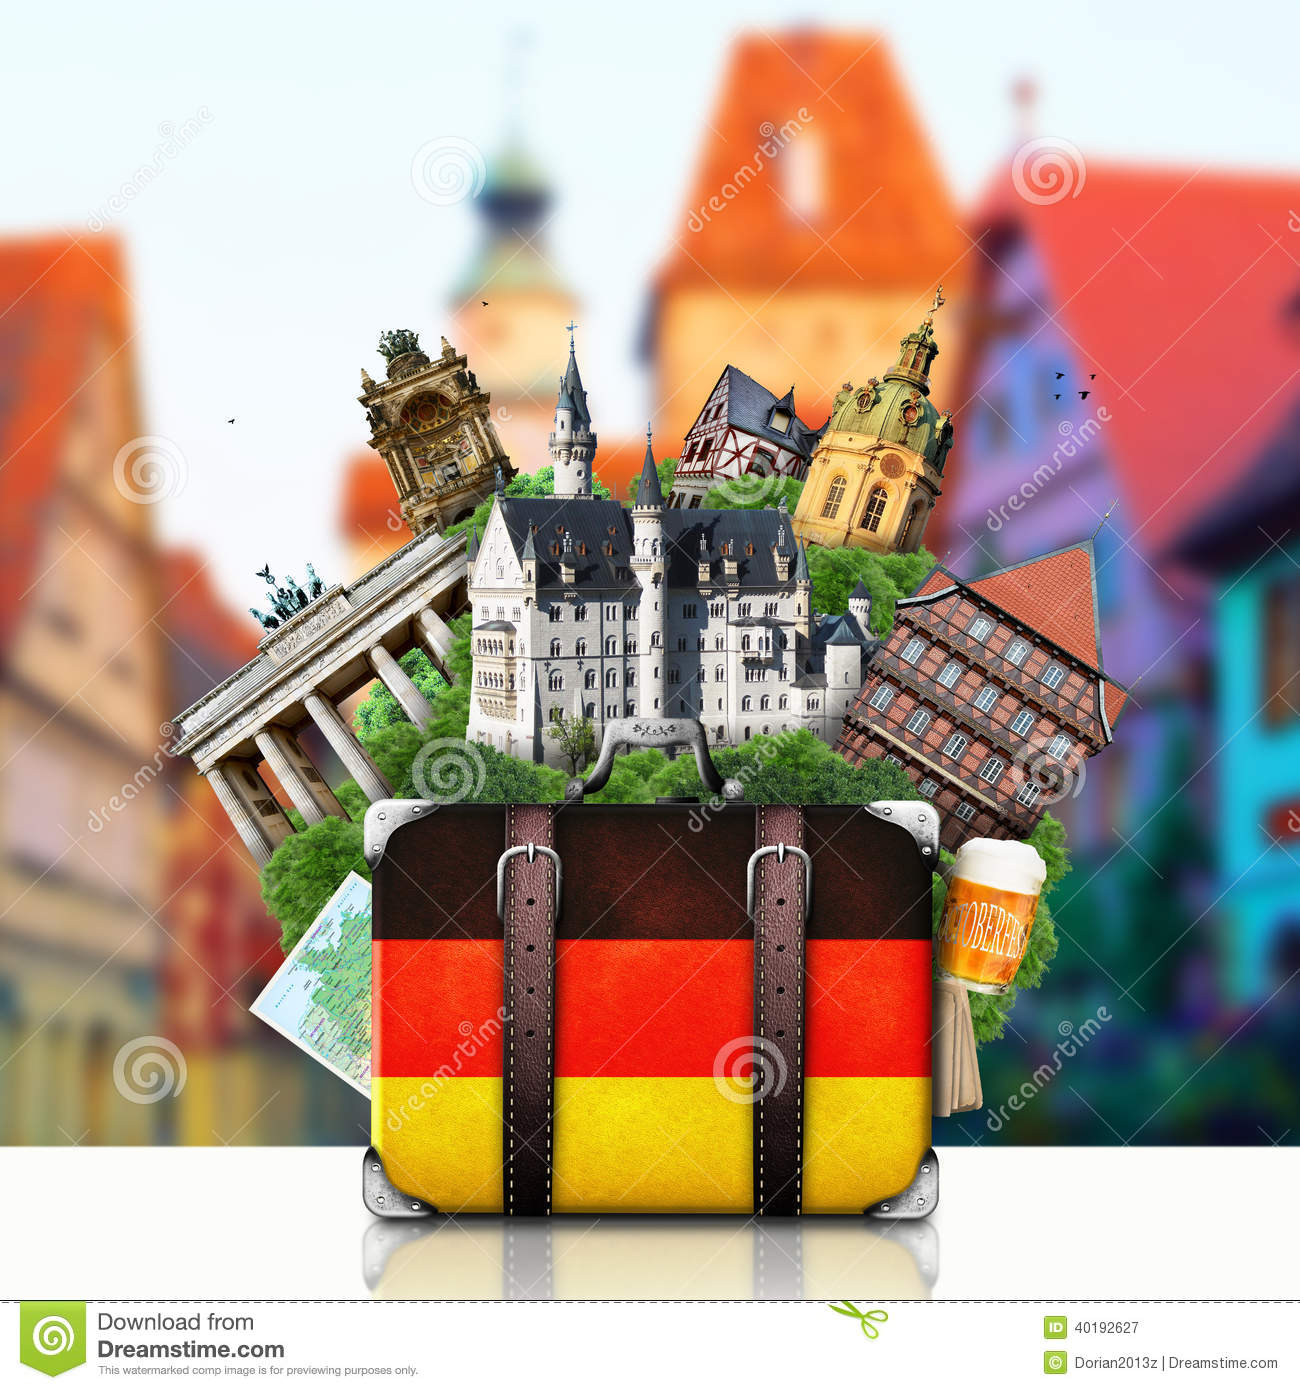 I Want To Visit Germany In German: Germany, German Landmarks, Travel Stock Photo